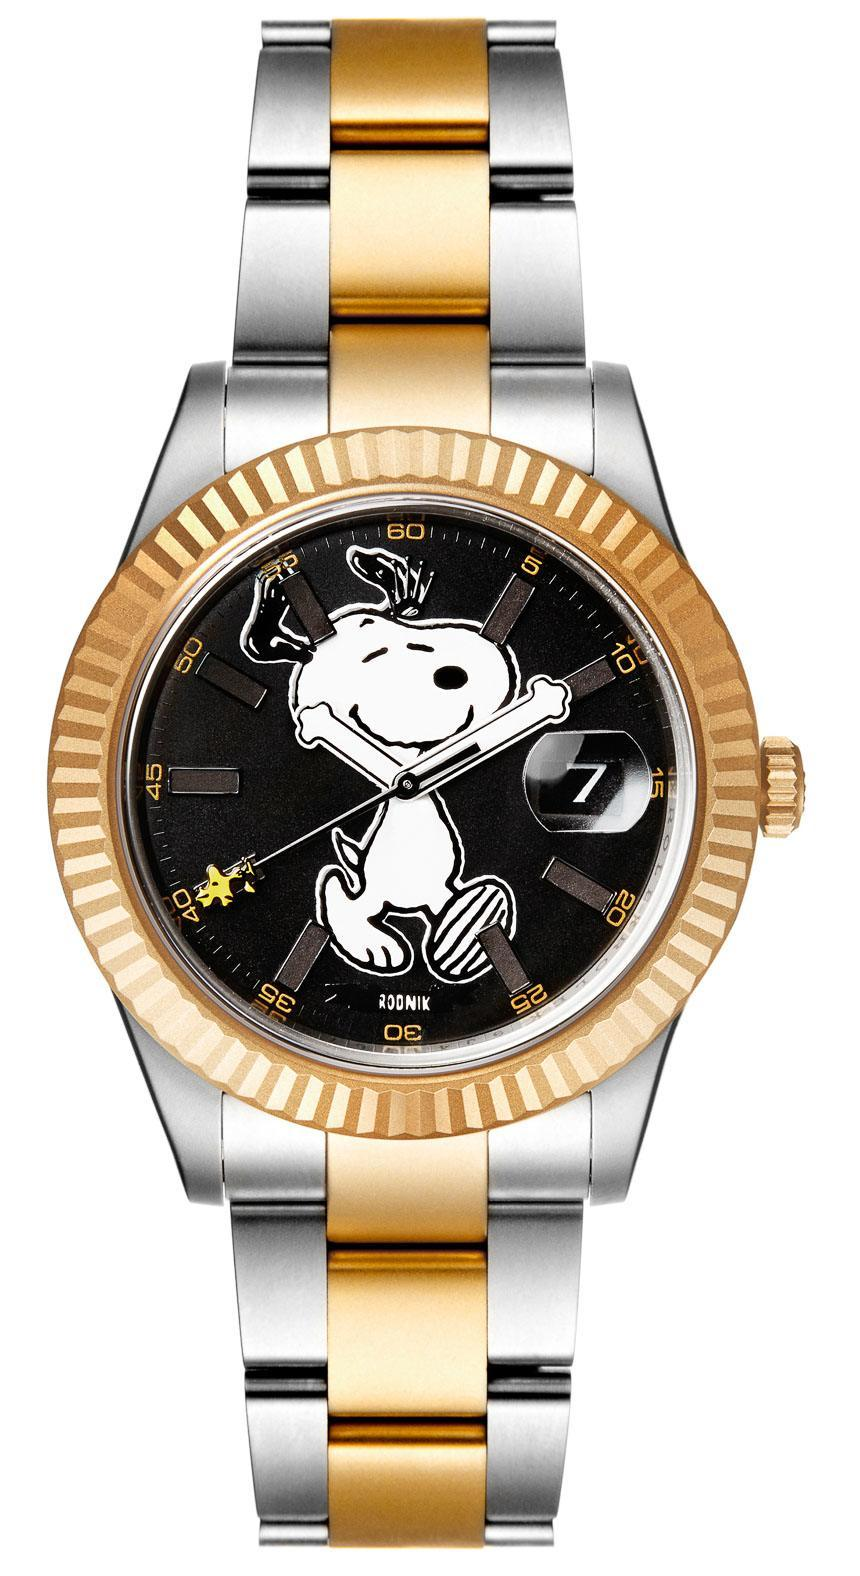 Bamford-The-Rodnik-Band-Snoopy-Rolex-Watch-3